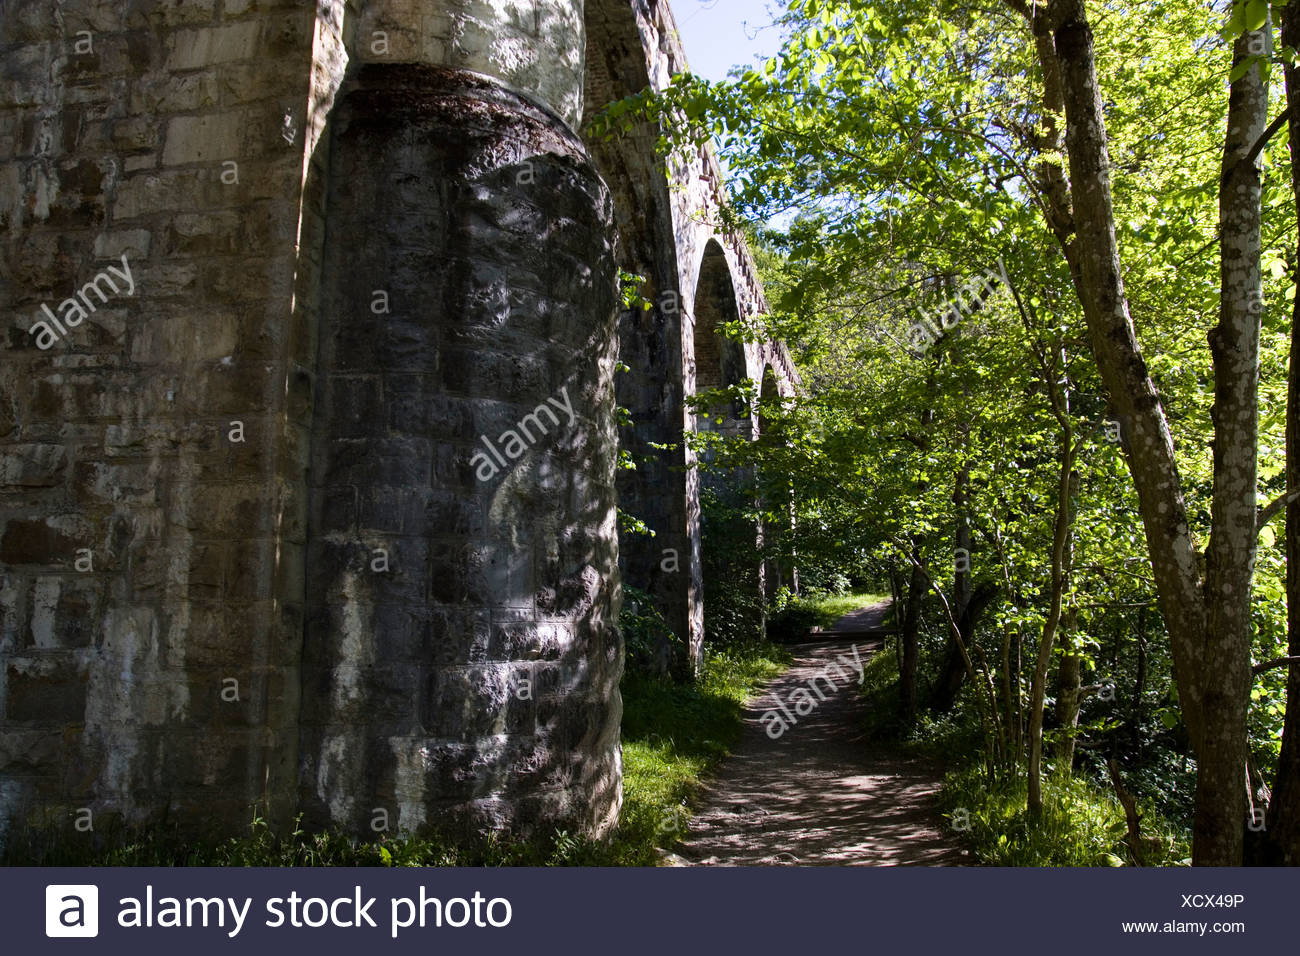 Scotland, Perthshire, Pass of Killiecrankie, narrow tree-lined path next to viaduct - Stock Image